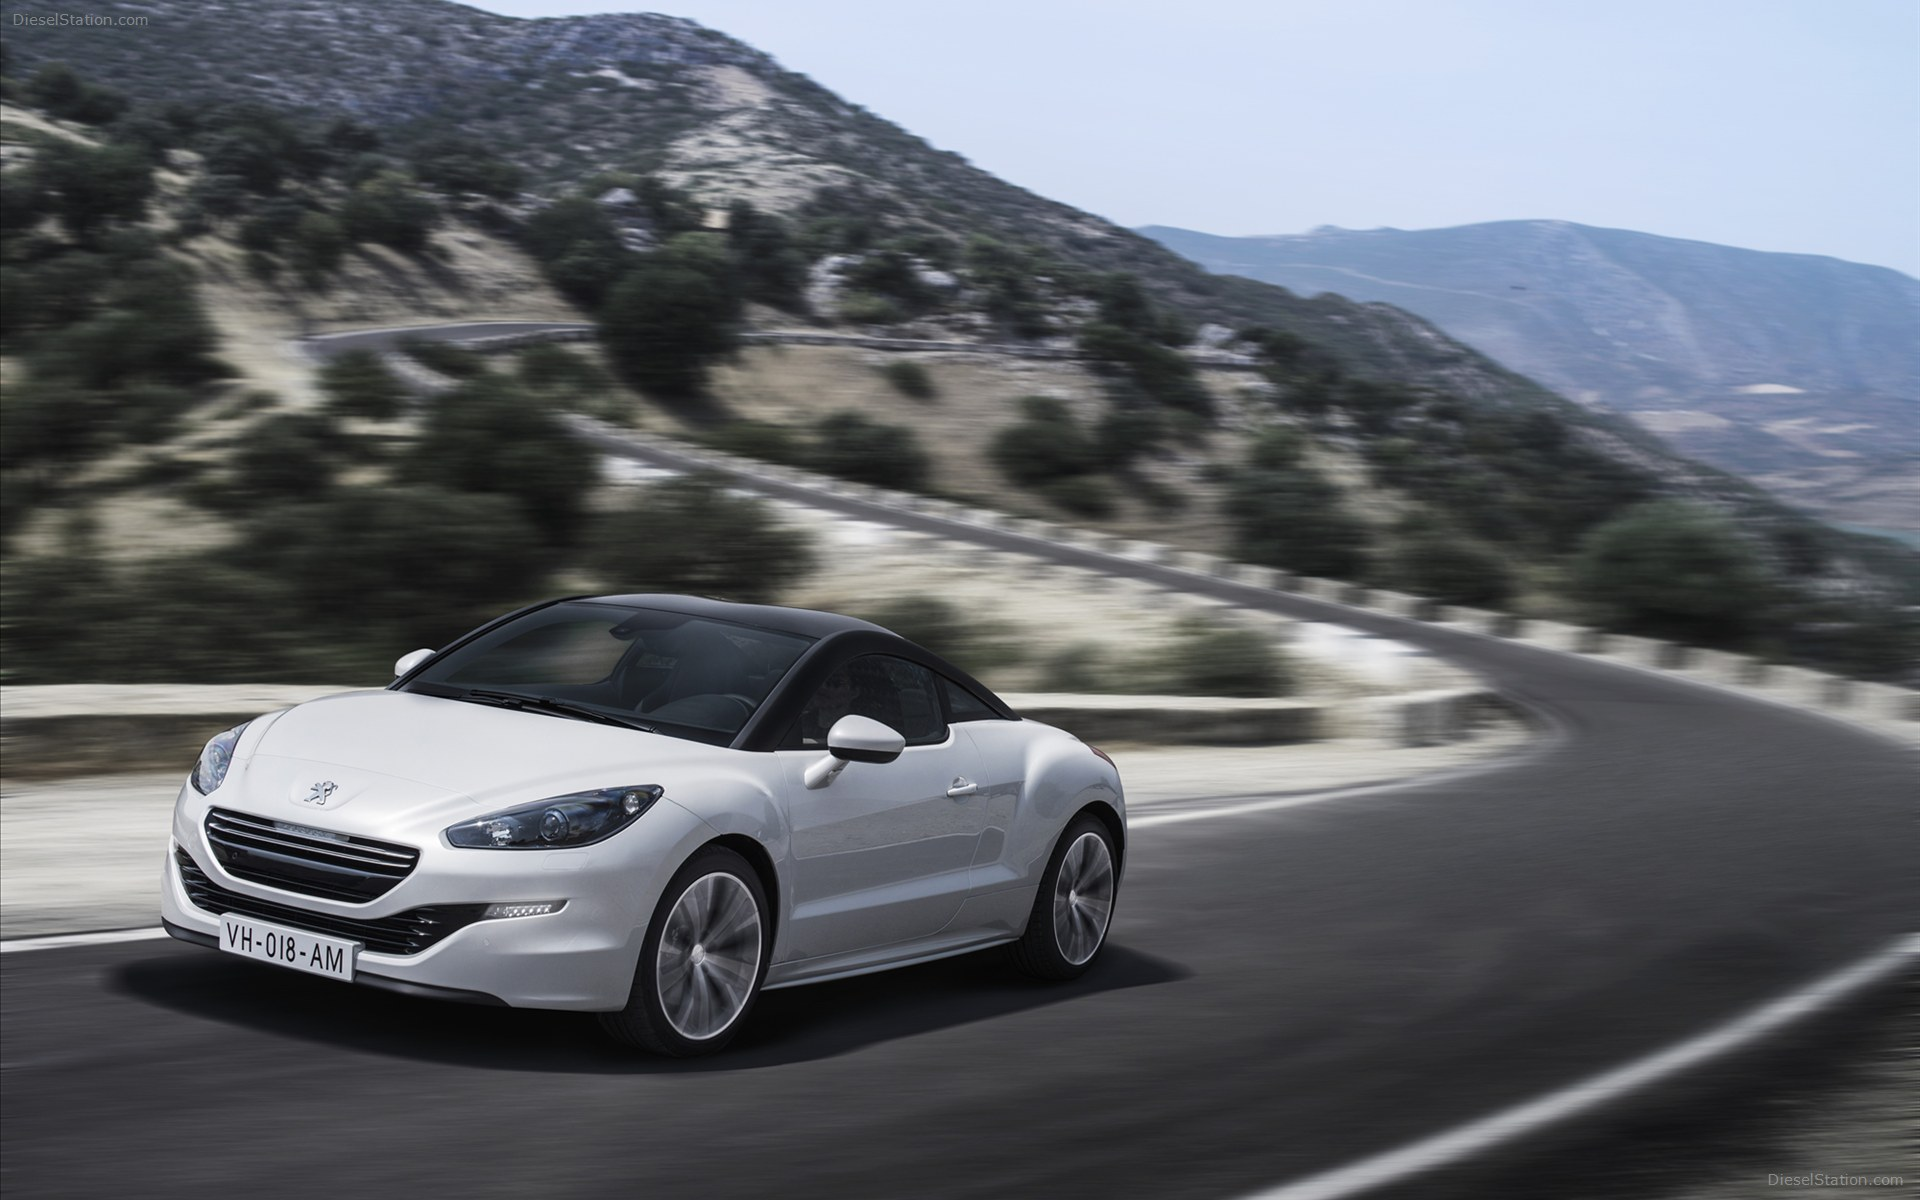 2013 Peugeot RCZ Coupe 2-door